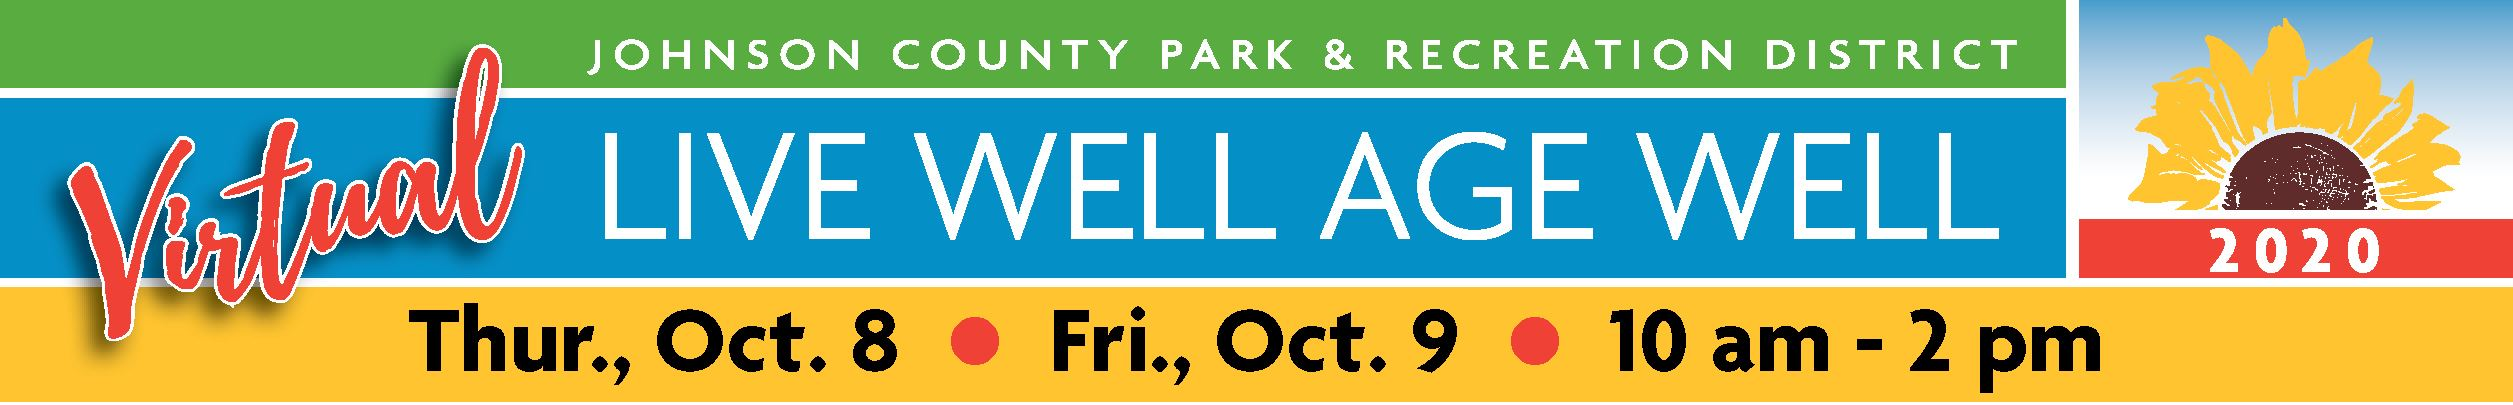 Virtual Live Well Age Well Thursday, October 8 and Friday, October 9, 2020 from 10 AM to 2 PM